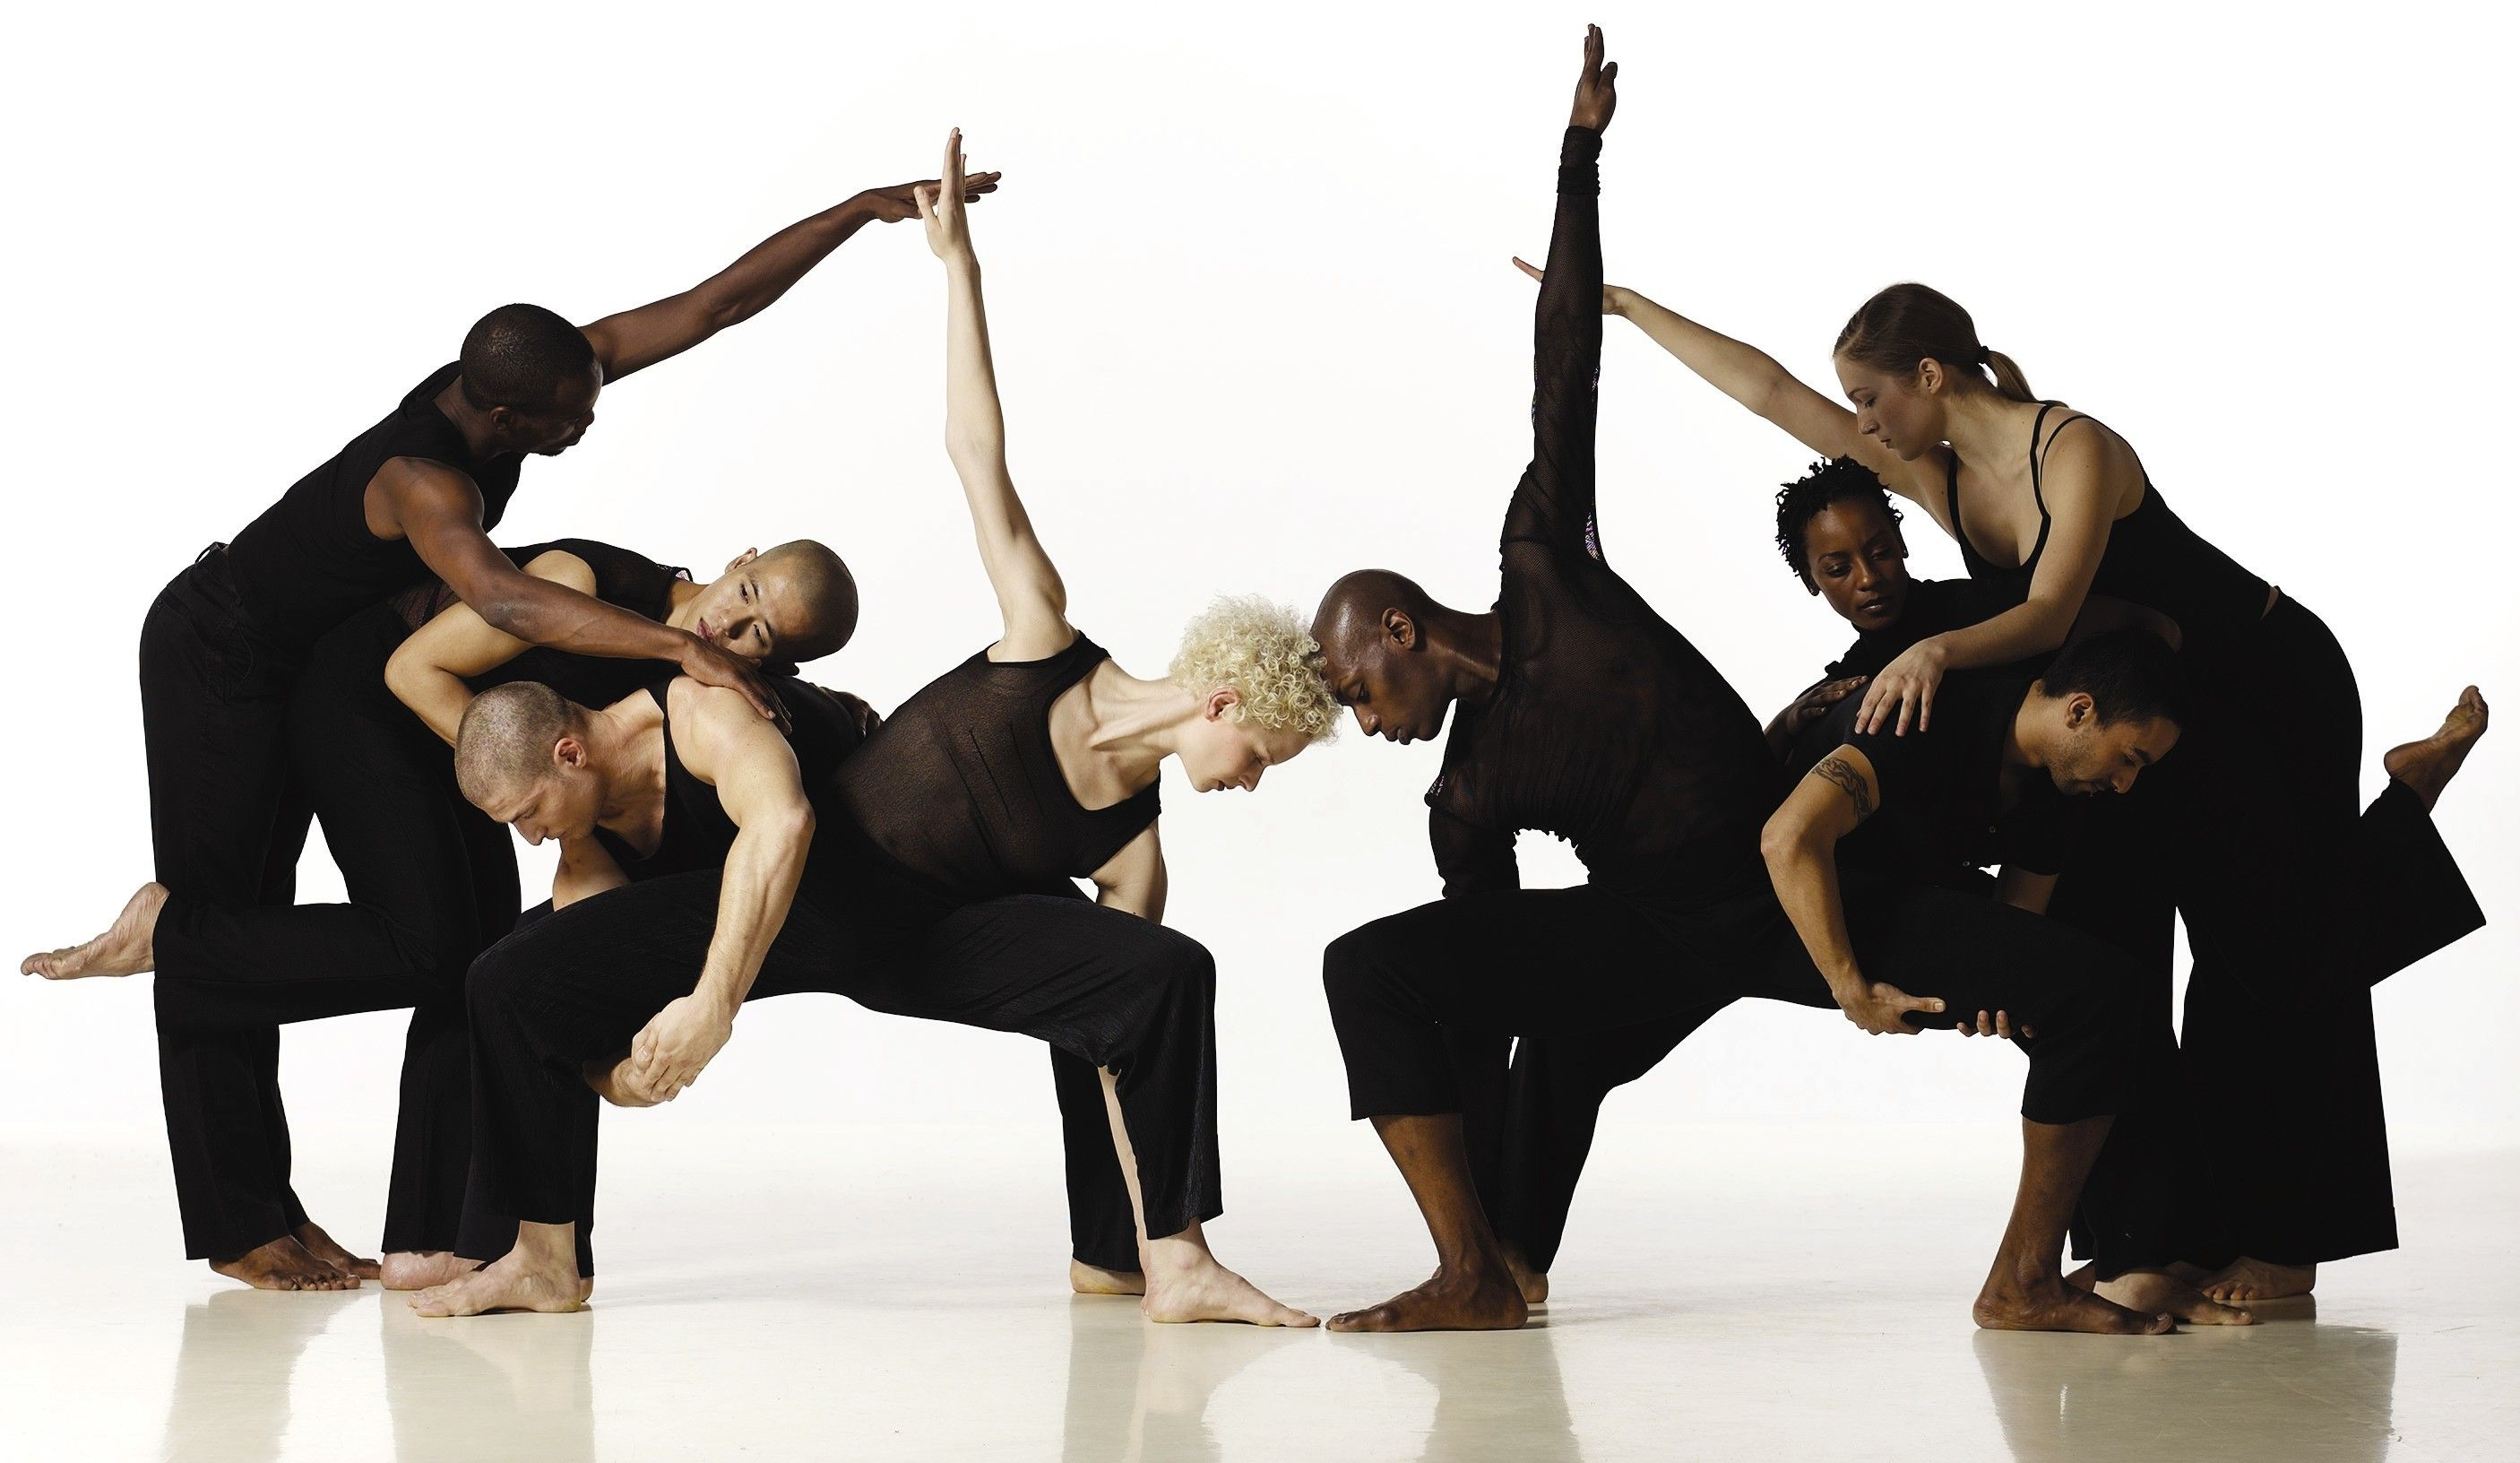 17 Best images about Group Moves on Pinterest   Dance company ...